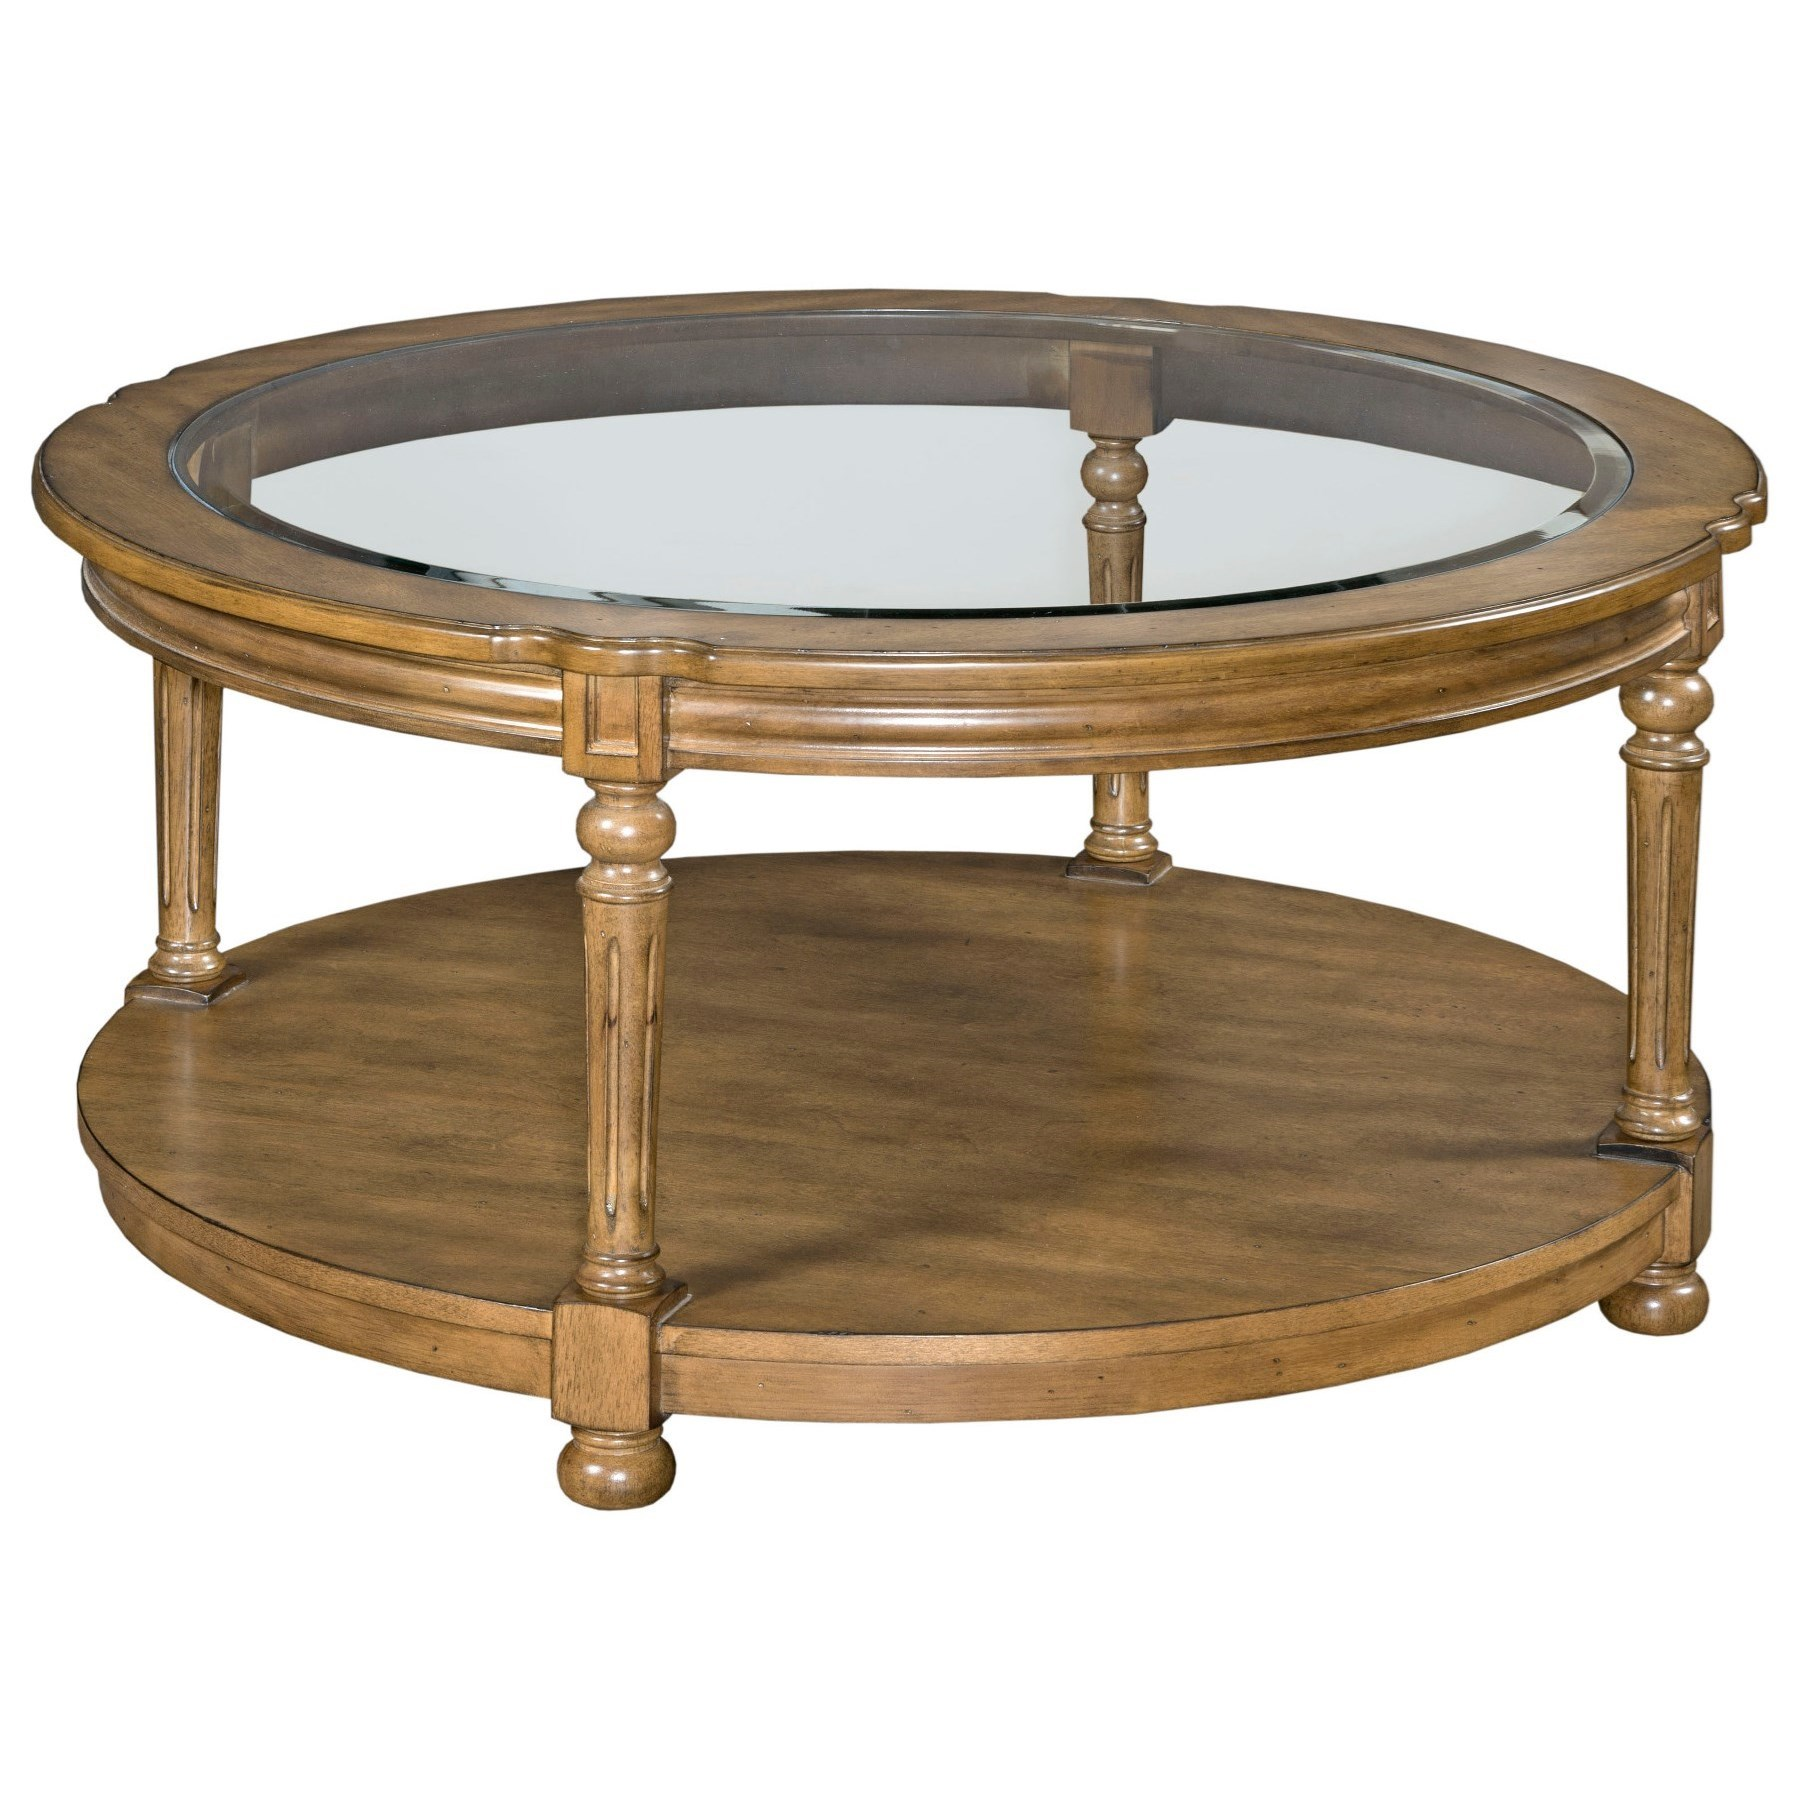 Candlewood Round Cocktail Table by England at Novello Home Furnishings